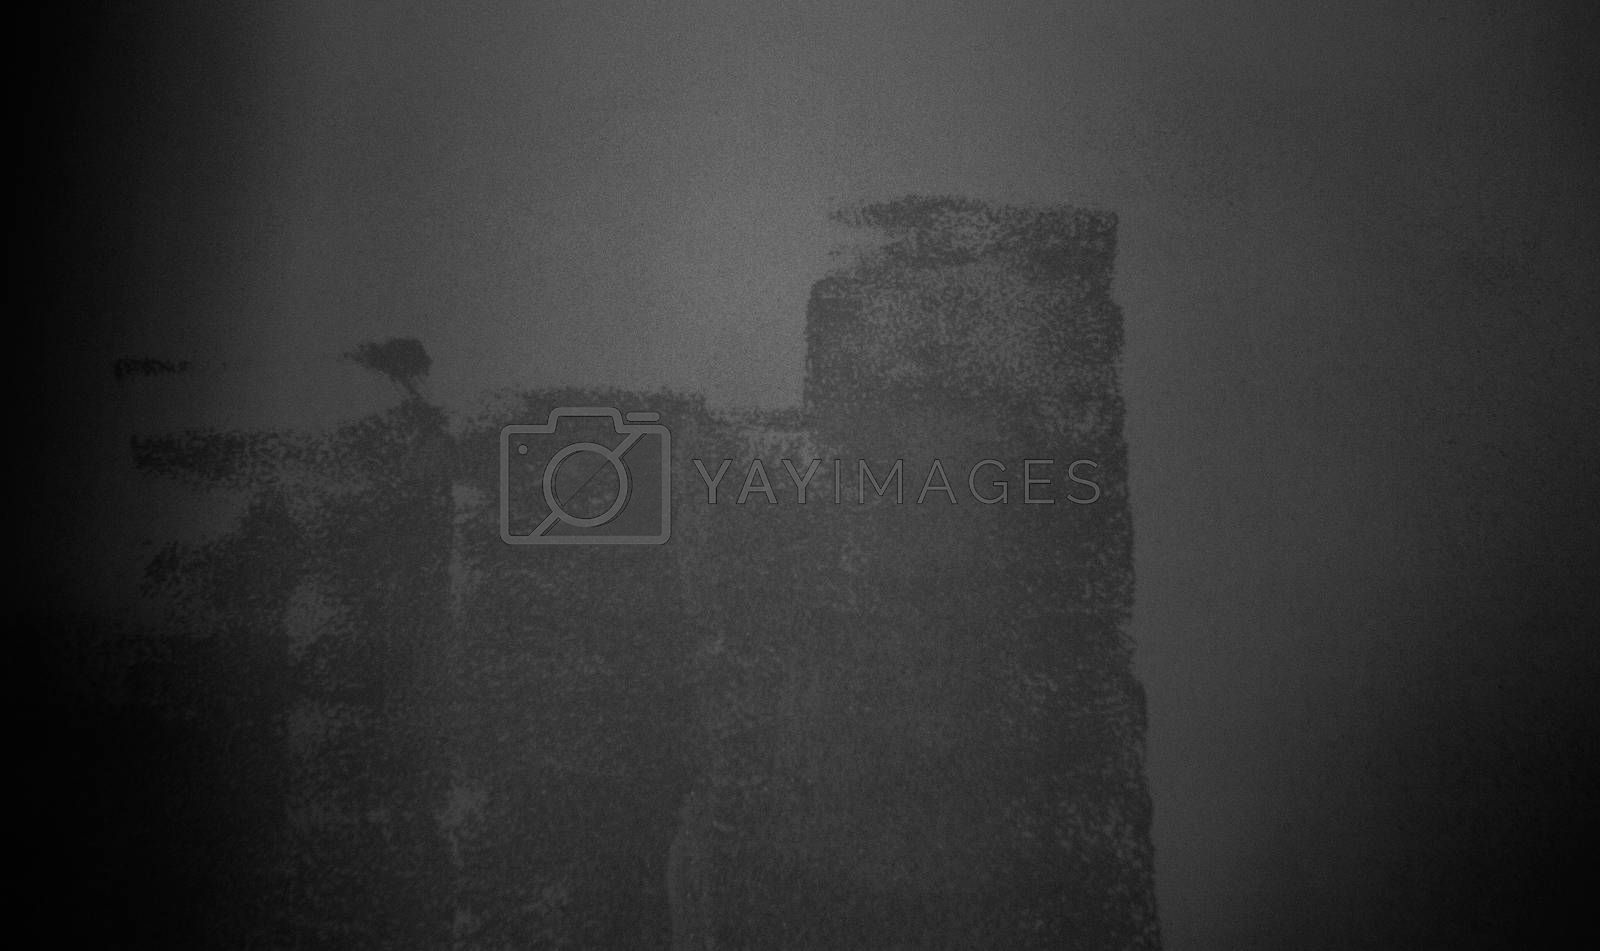 Abstract dark photocopy background with noise, Error concept